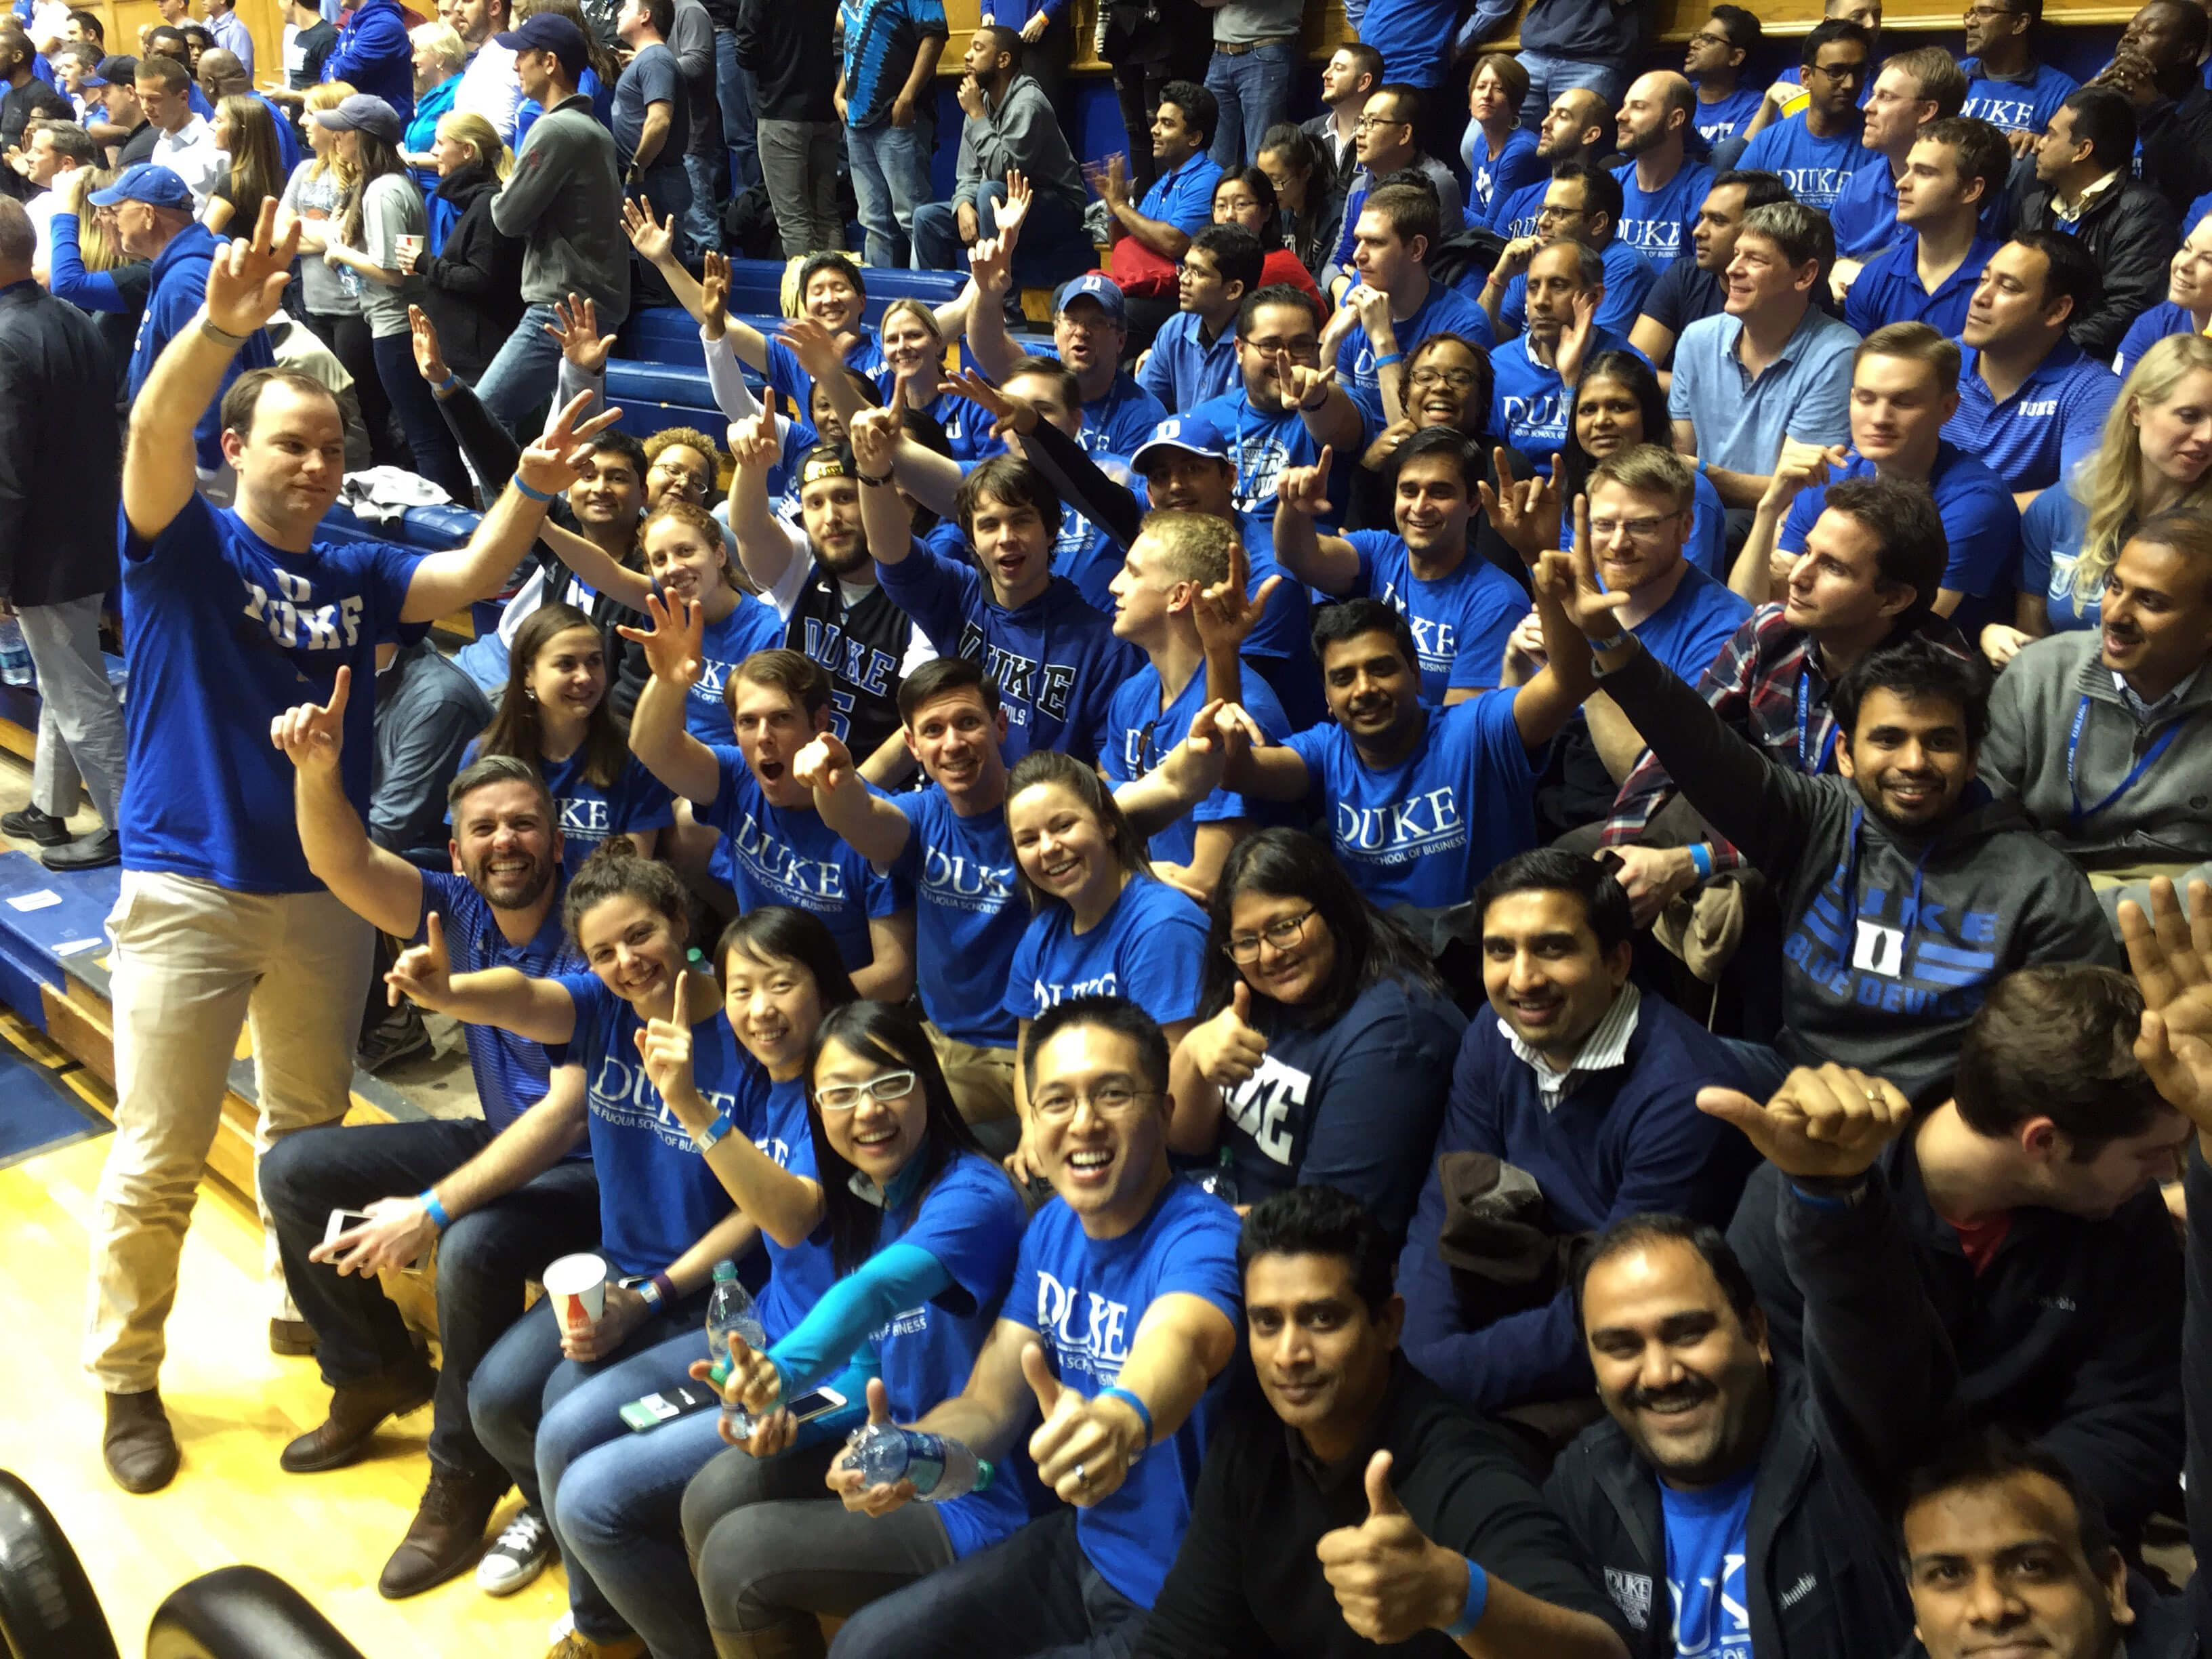 dozens of students sitting in the stands at a basketball game in Cameron Indoor Stadium, a scene unique to the MBA experience at Duke